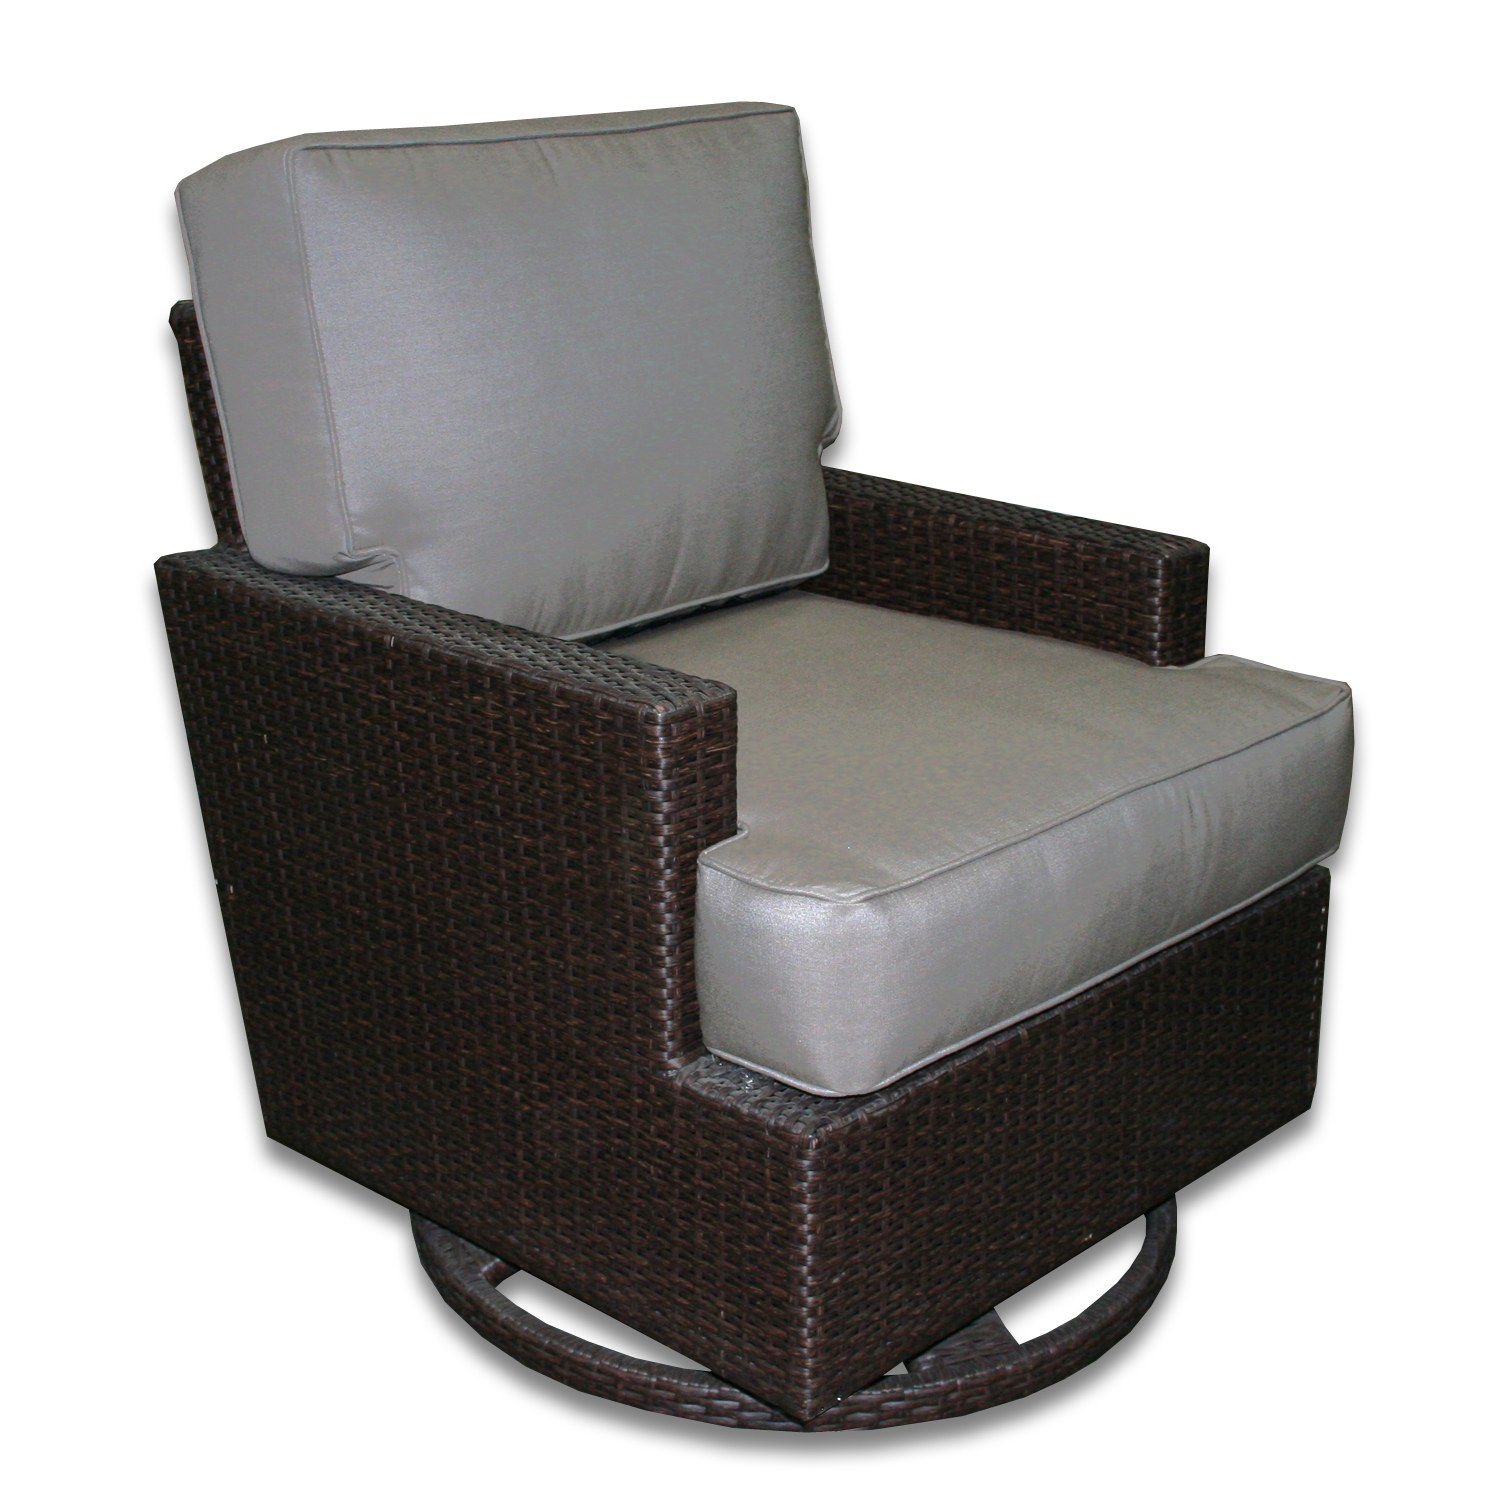 swivel chair price philippines ergonomic office new zealand signature outdoor rocker with graphite fabric by